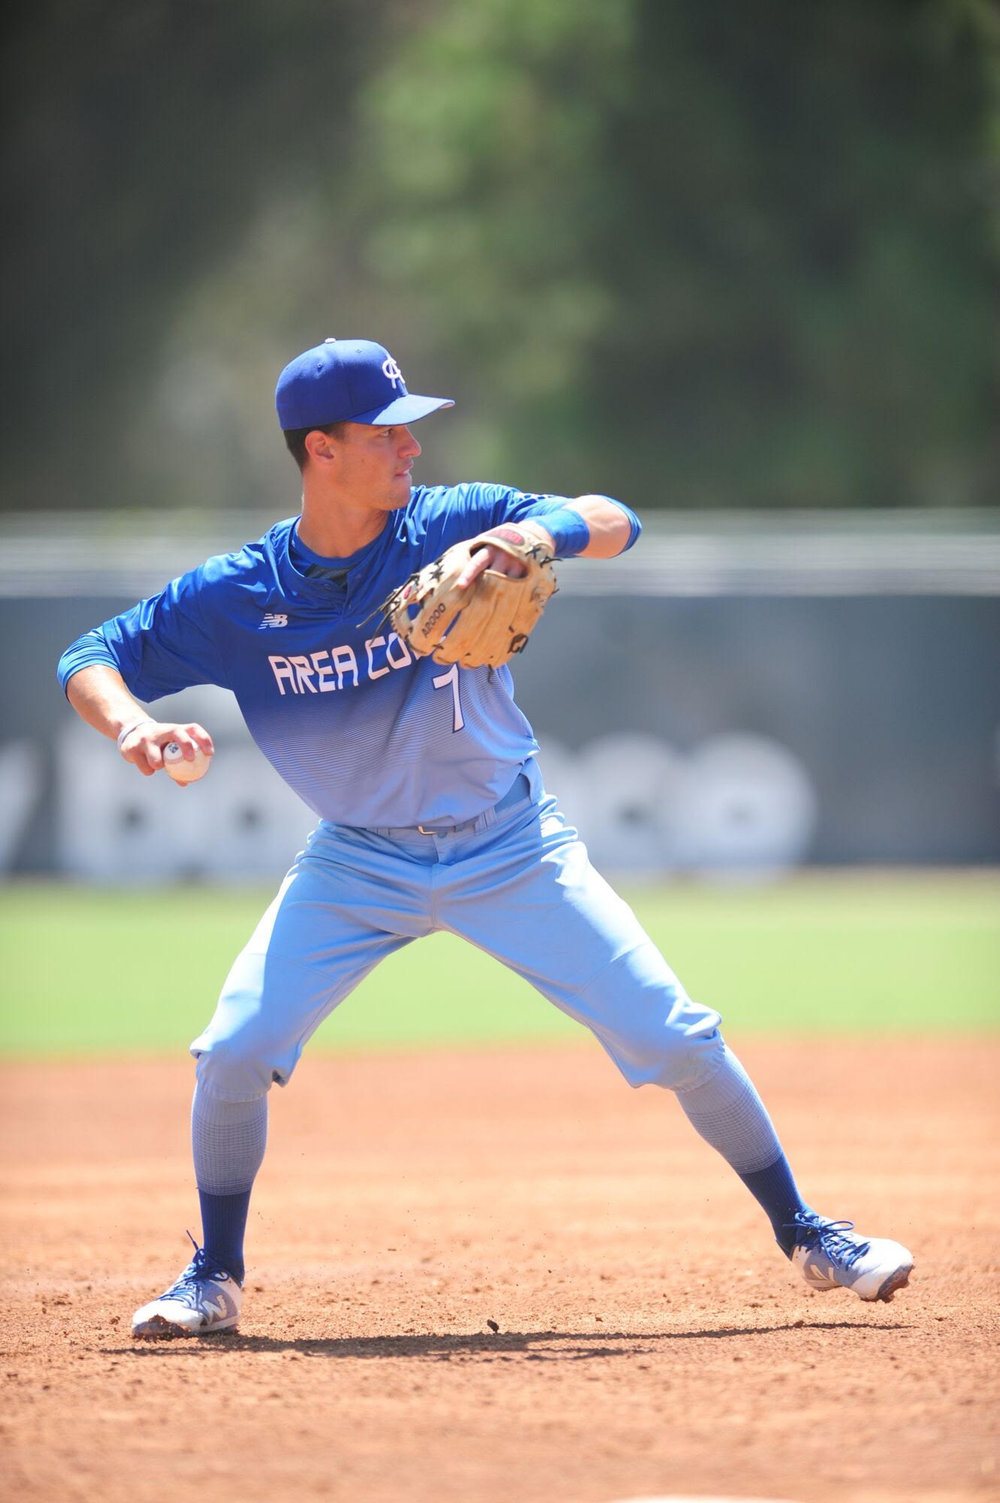 Palmegiani at the Area Code Games this past August.